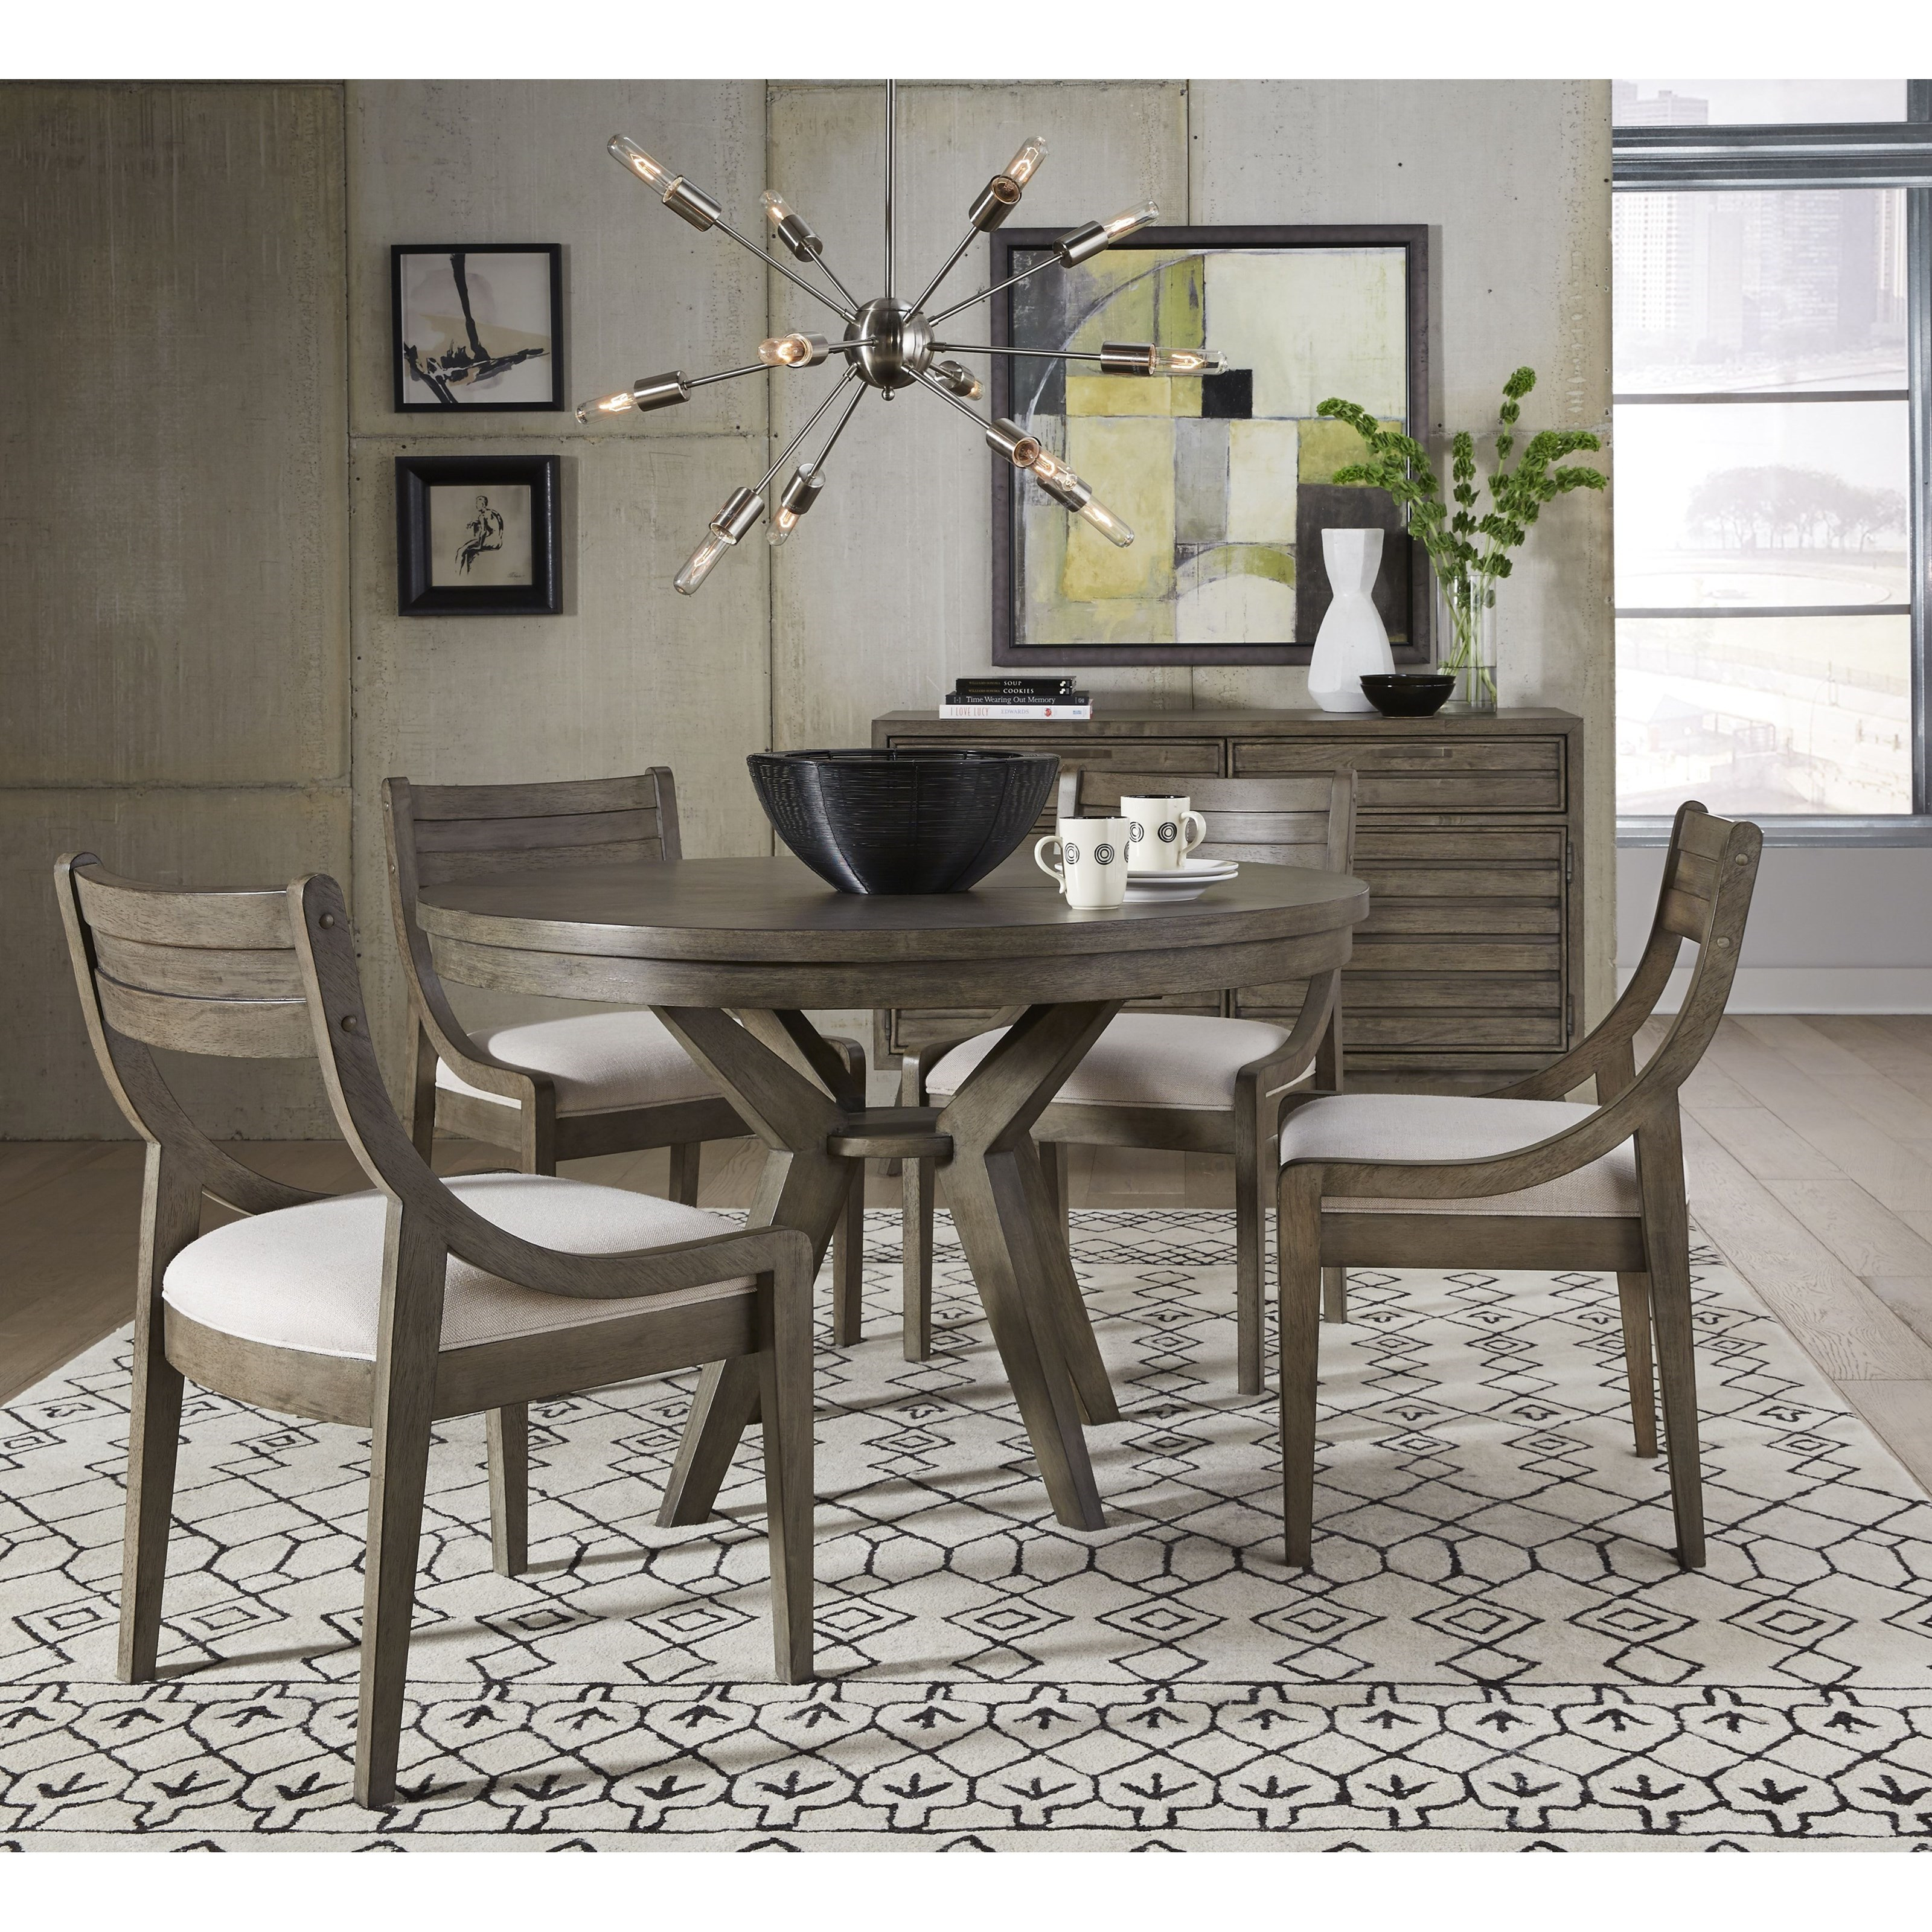 Greystone Casual Dining Room Group by Legacy Classic at Johnny Janosik